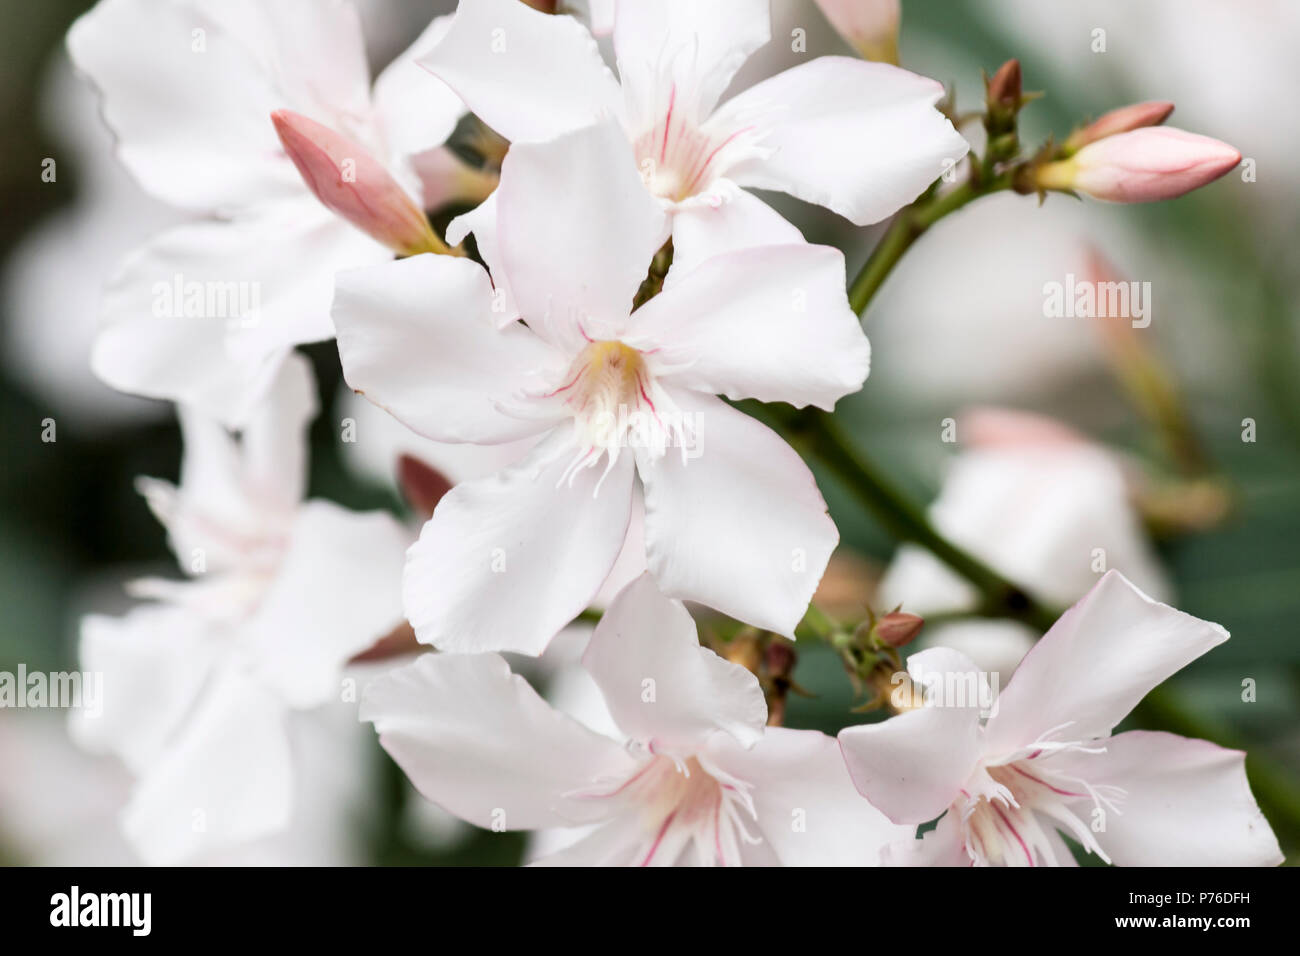 White Oleander Flowers Stock Photo 210969349 Alamy